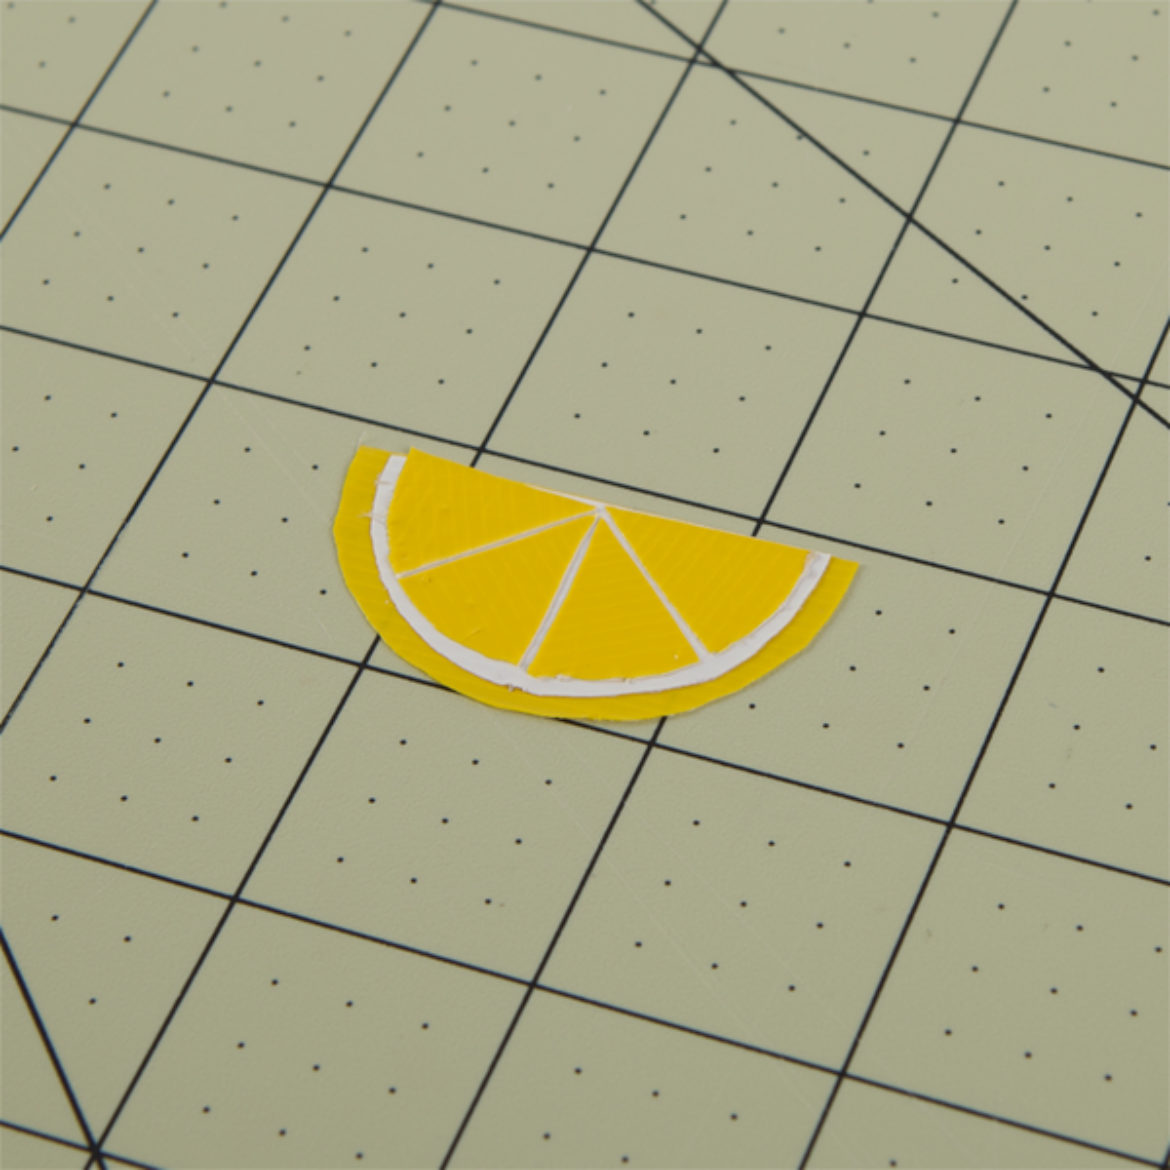 Steps 5-6 repeated until there are 4 equal segments in your lemon wedge